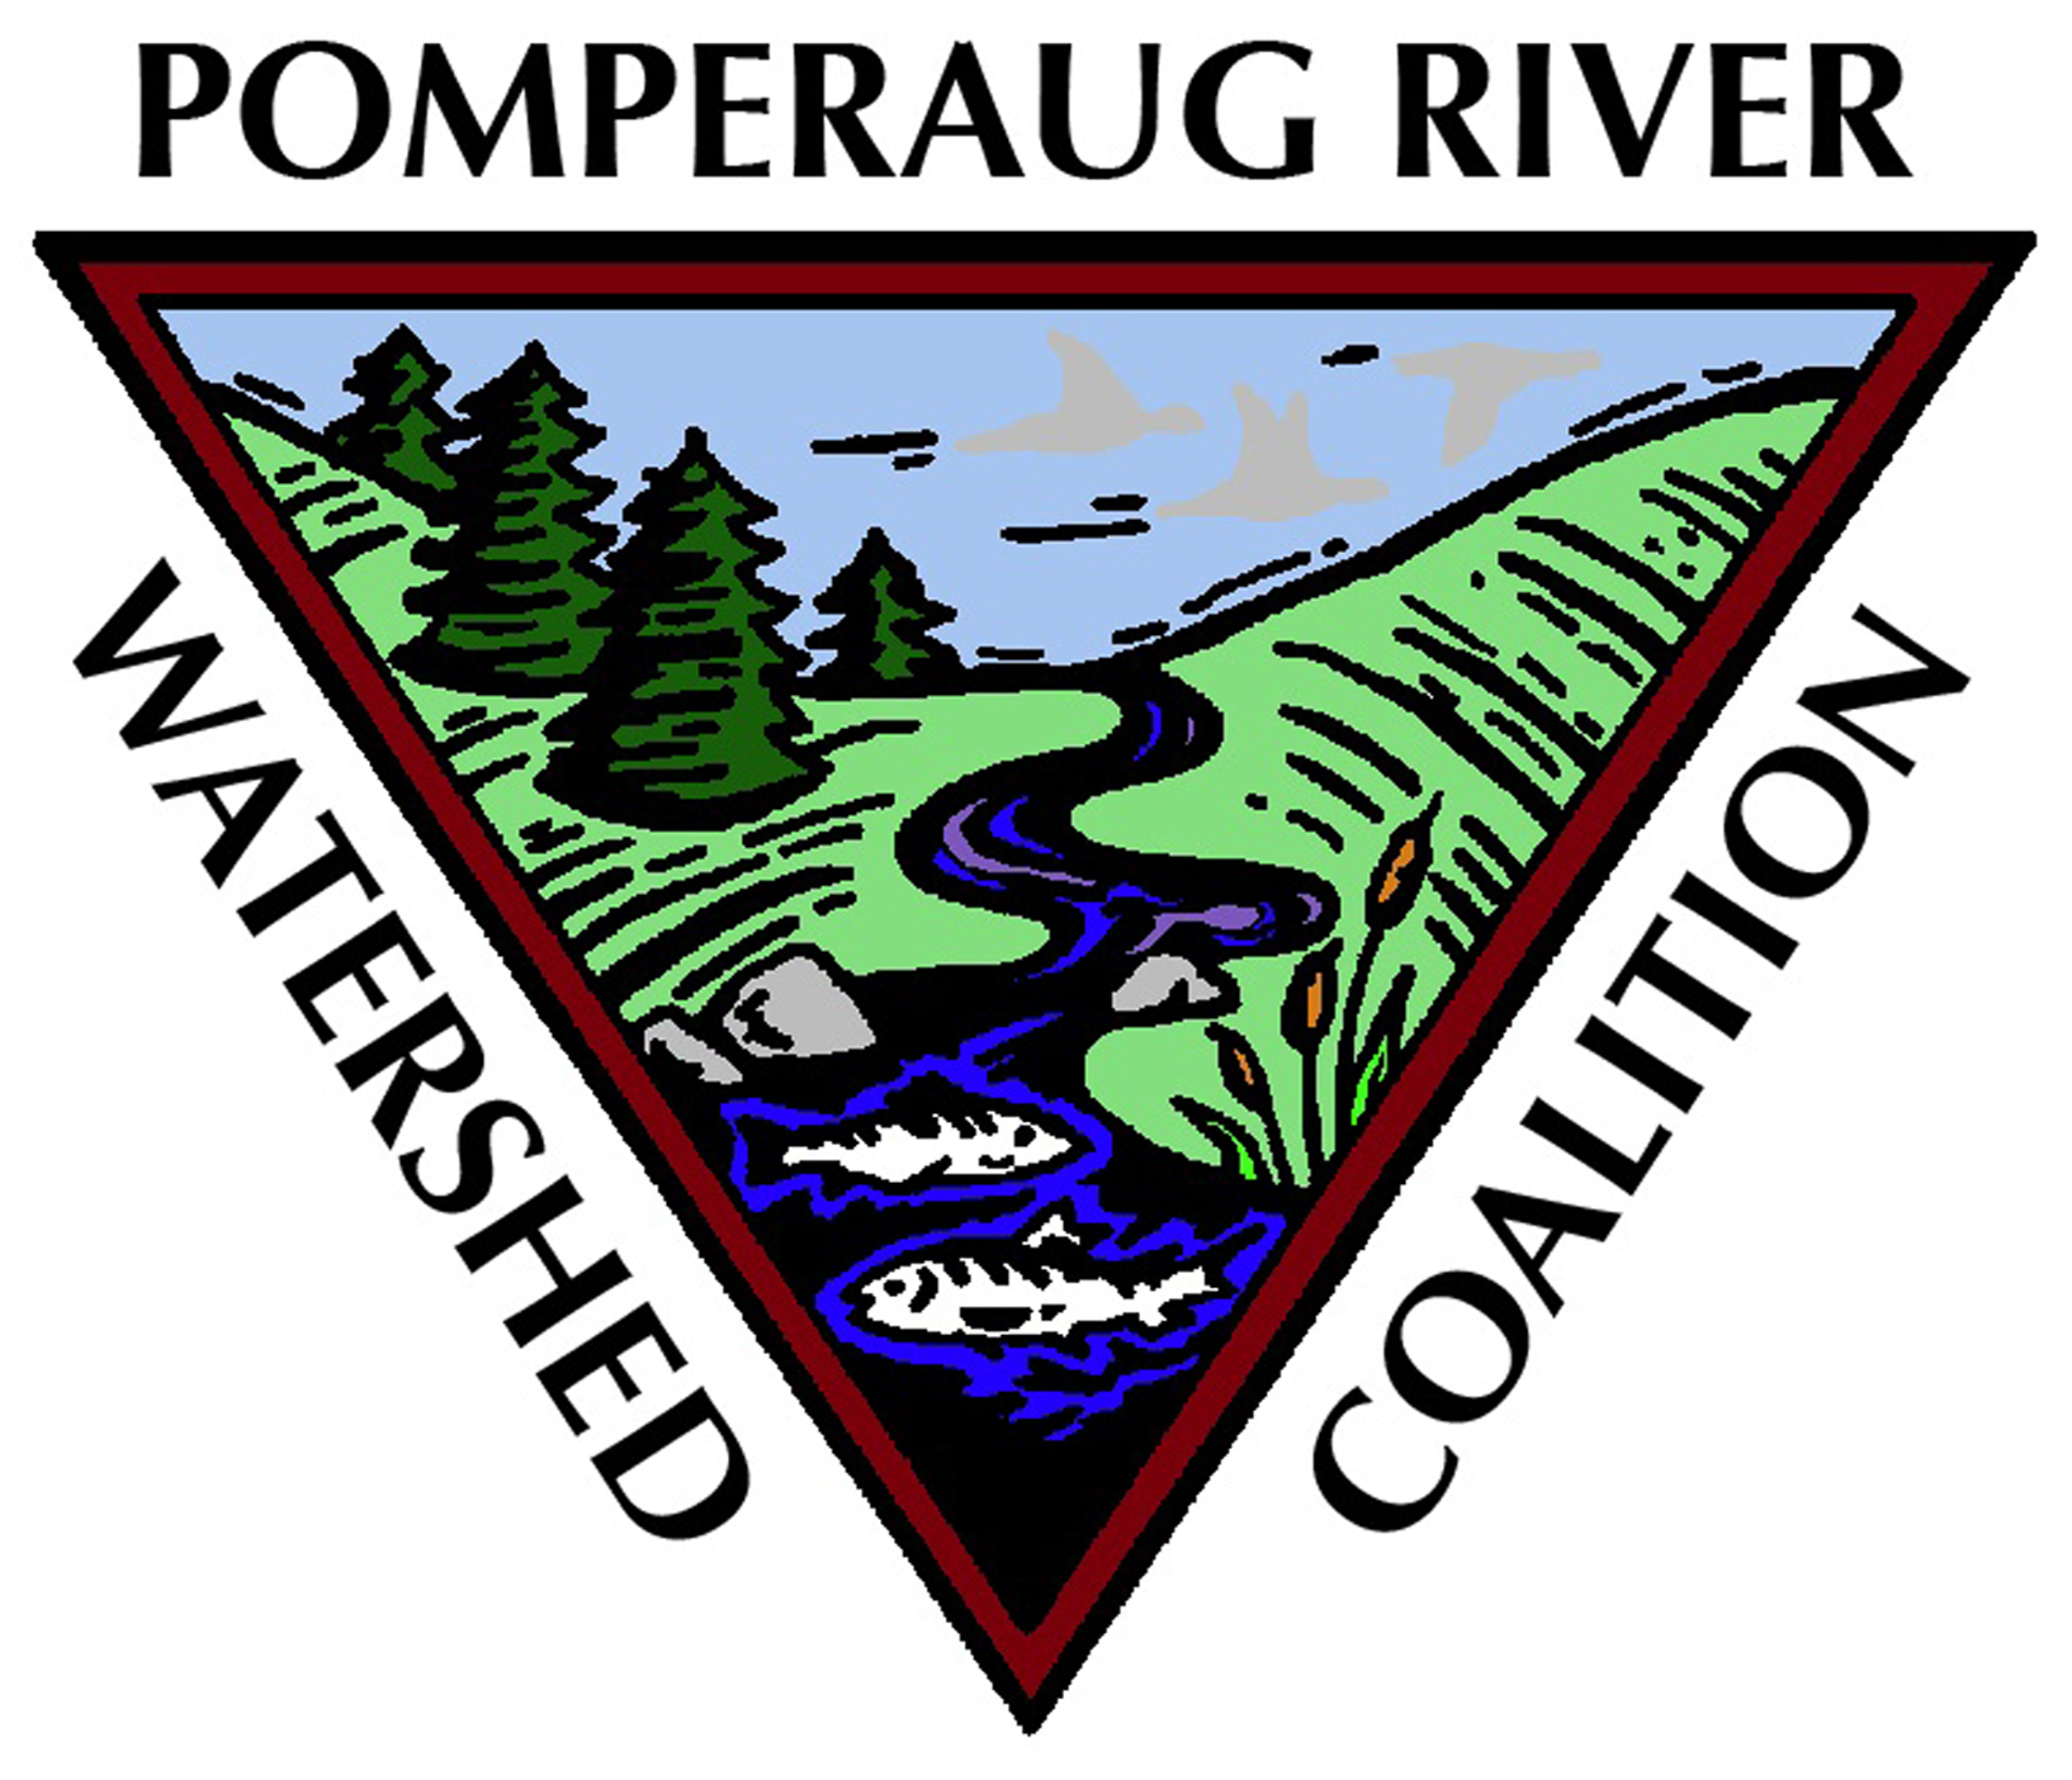 Pomperaug River Watershed Coalition